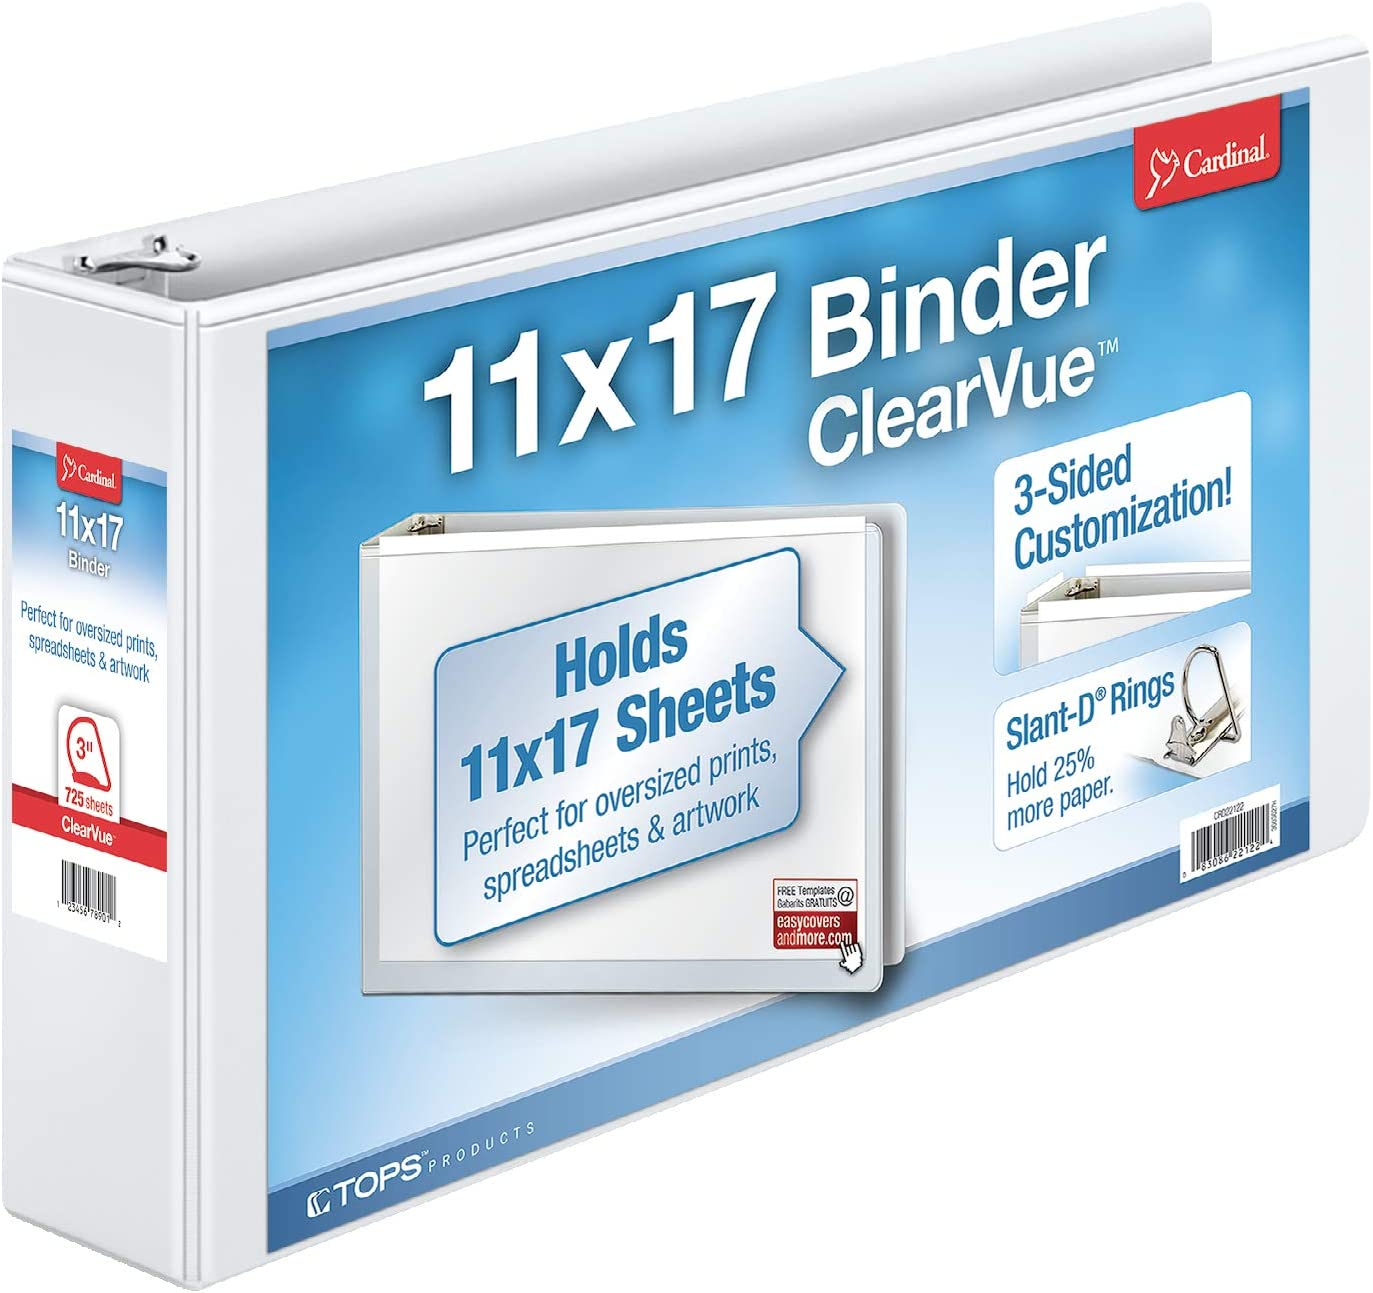 Cardinal 11-Inch x 17-Inch ClearVue Slant-D Ring Binder, 3-Inch, White (22142V3) : Office D Ring And Heavy Duty Binders : Office Products